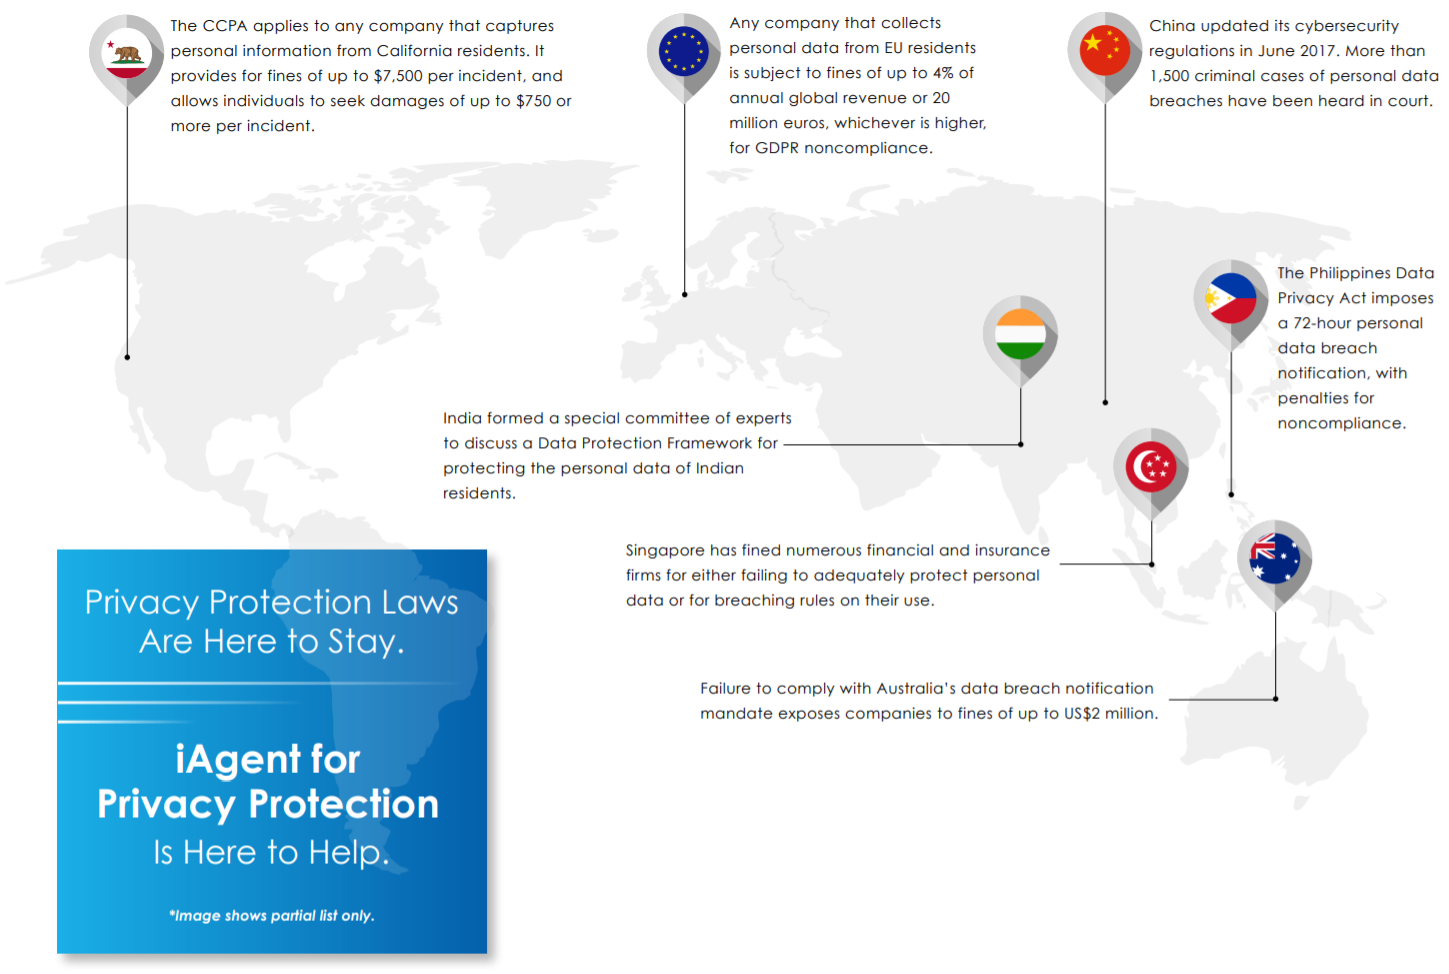 Map showing a sample of data privacy protection laws around the world